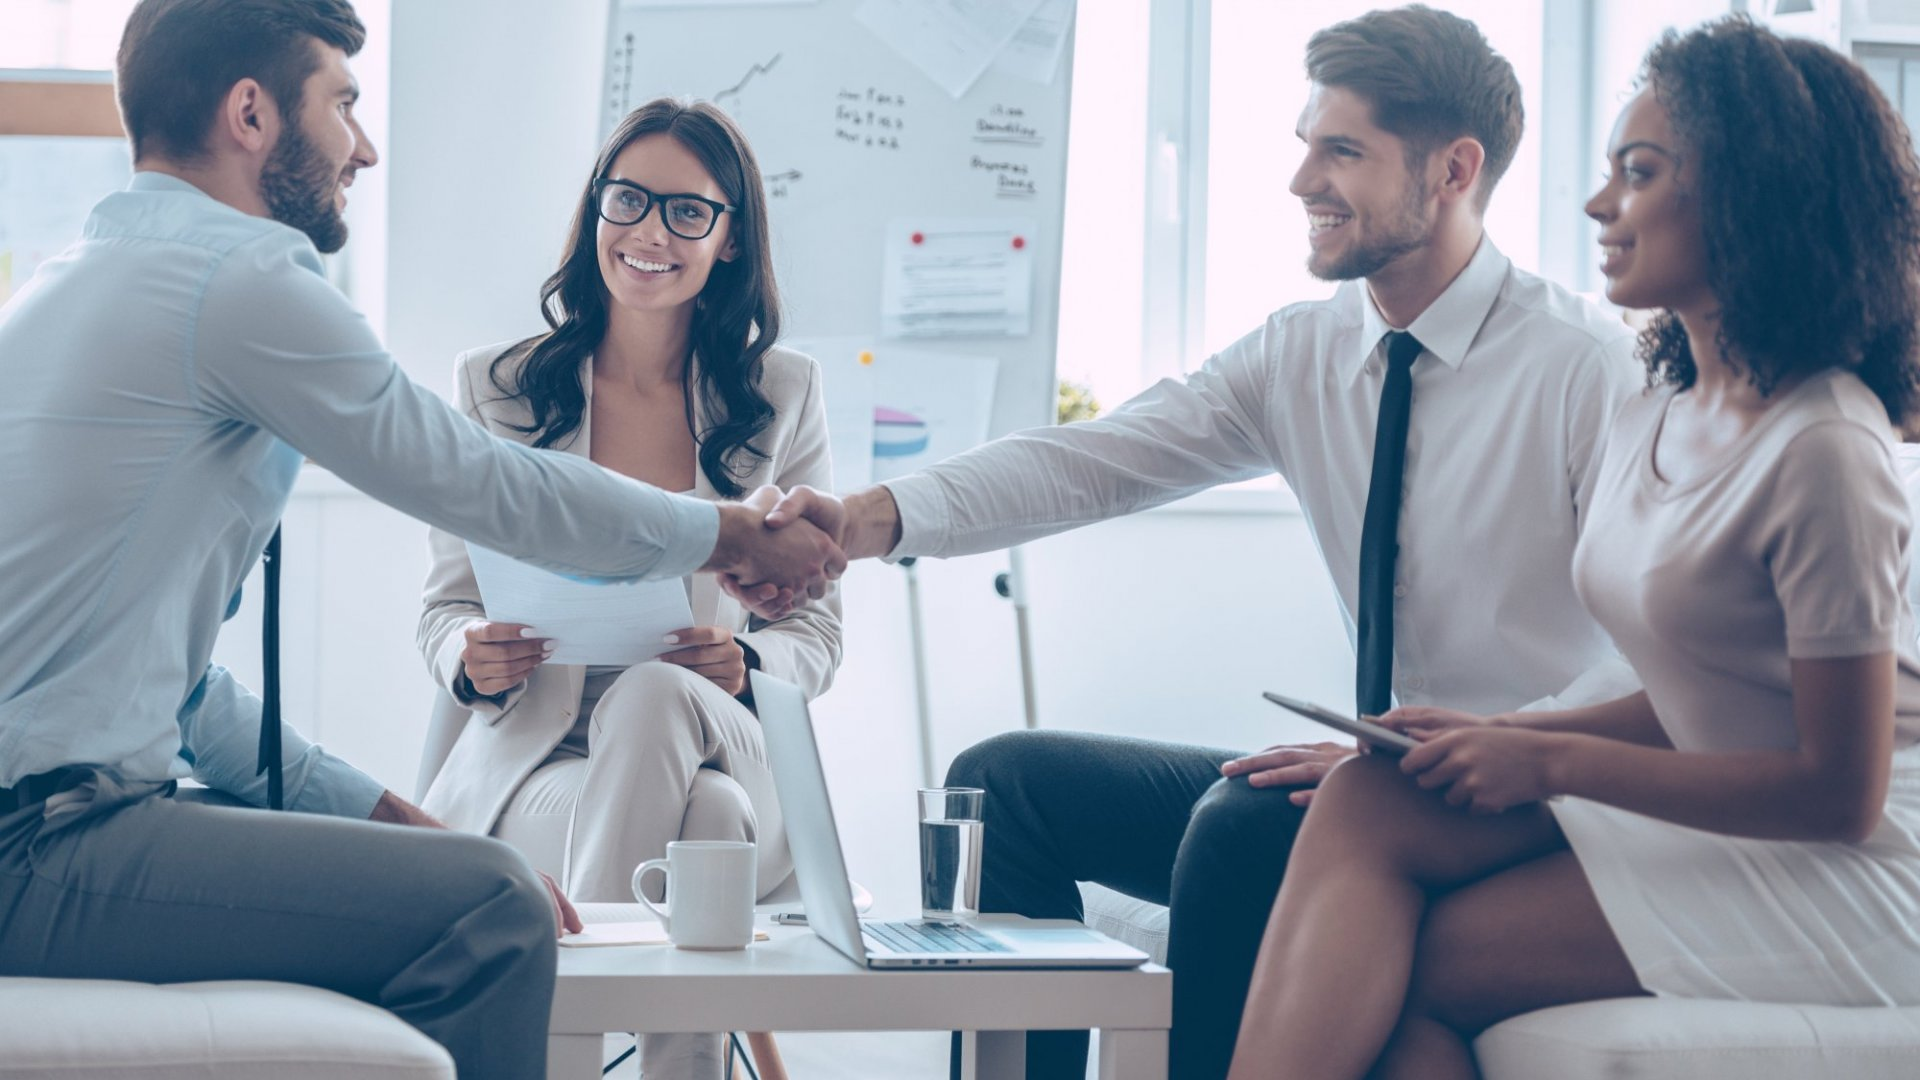 3 Key Things You Should Do After Meeting Someone New